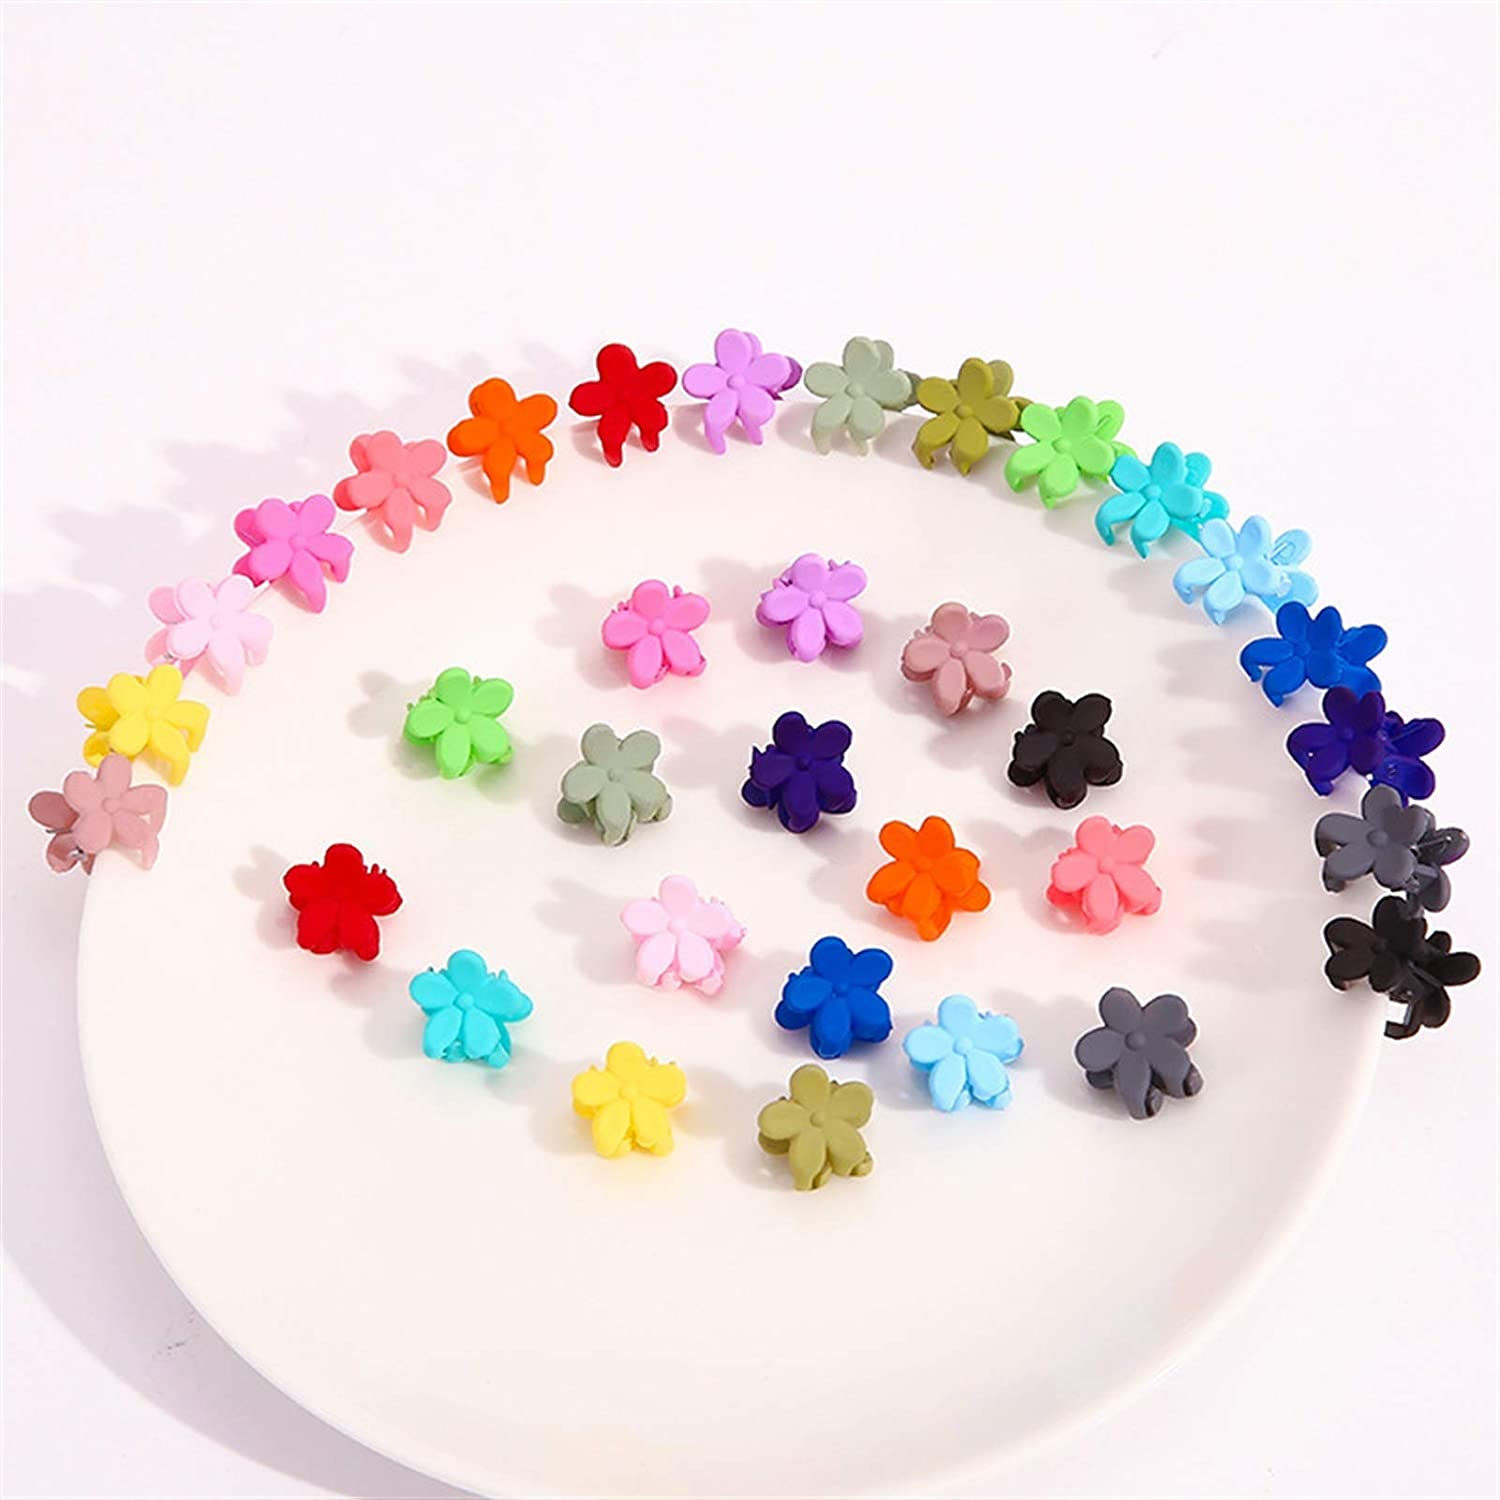 whbage Hairpin Clearance SALE! Limited time! 20PCS Flower Hair Direct stock discount Fashion Baby Small Clips Girls